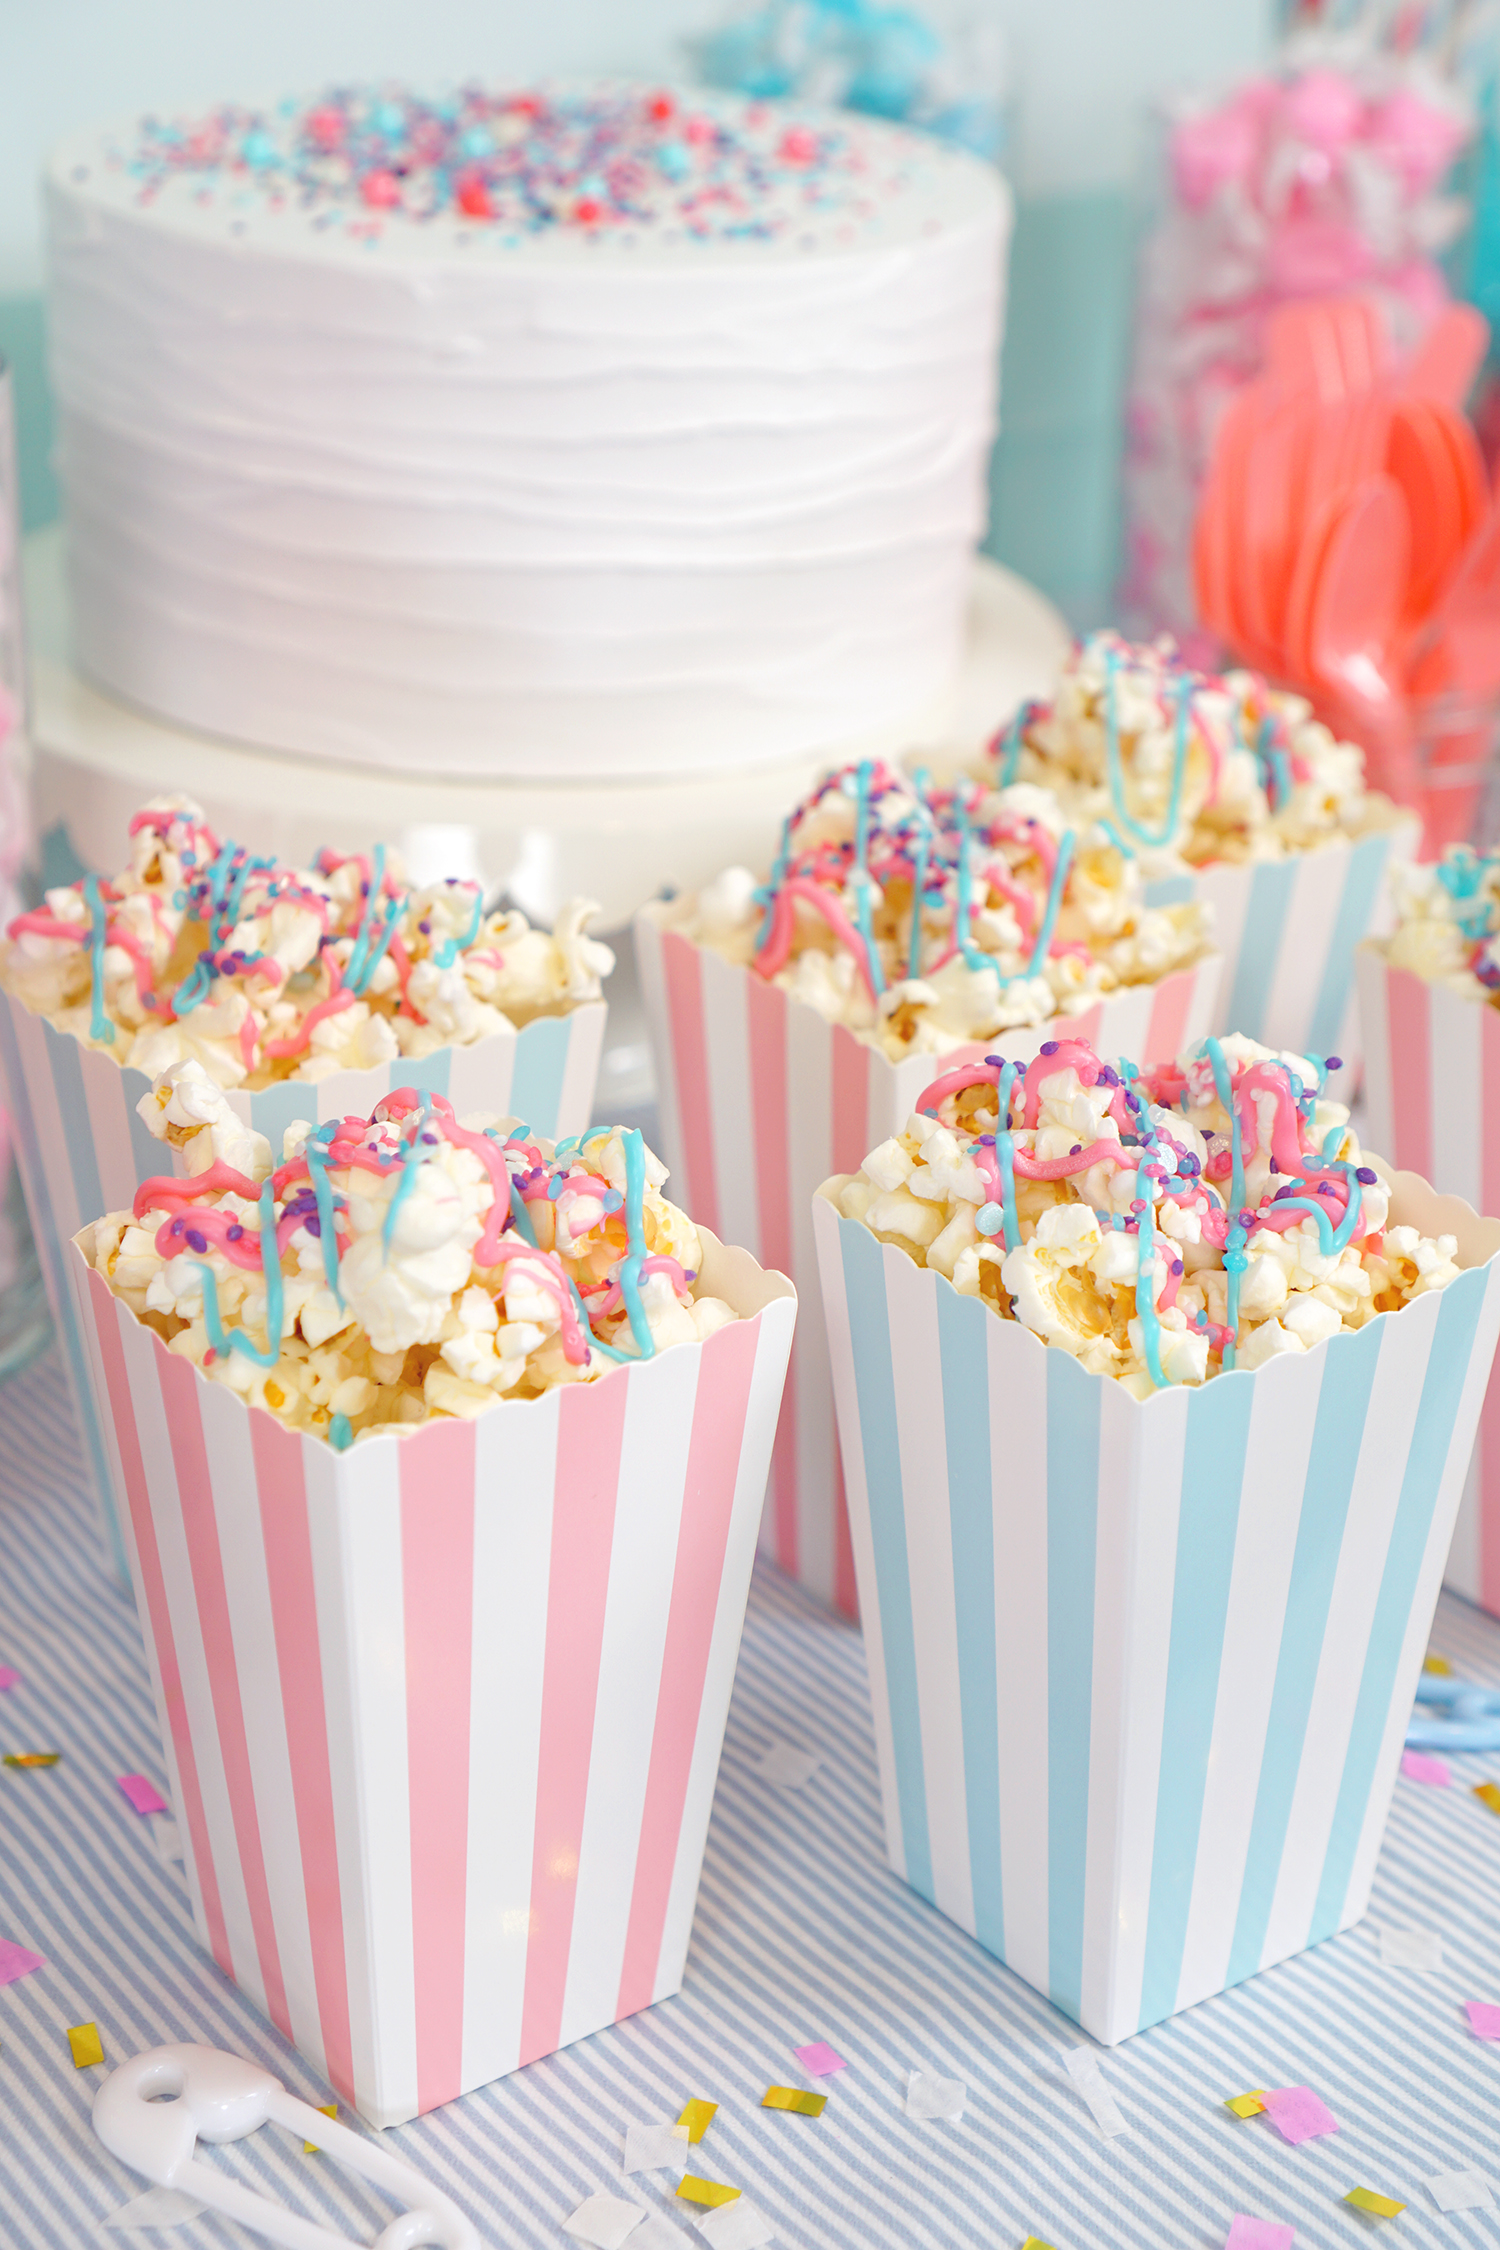 Pink and blue striped popcorn boxes filled with pink and blue drizzled popcorn